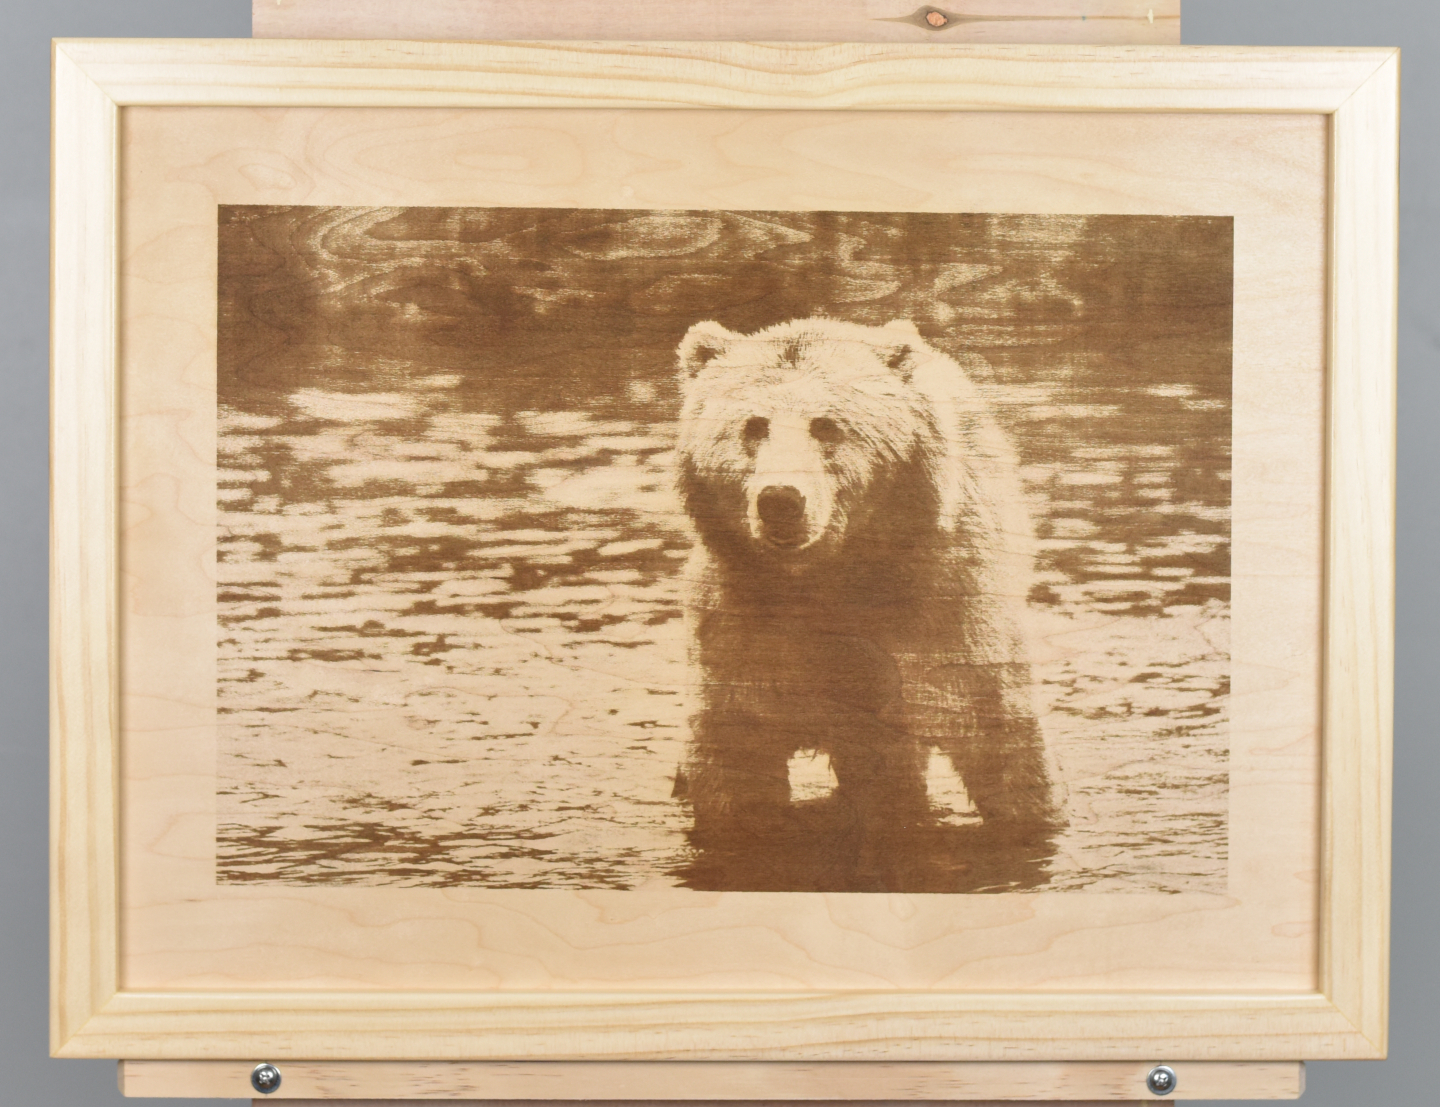 A wood burning (digital pyrograph) of brown bear in a river based on a photograph by Skeeze.